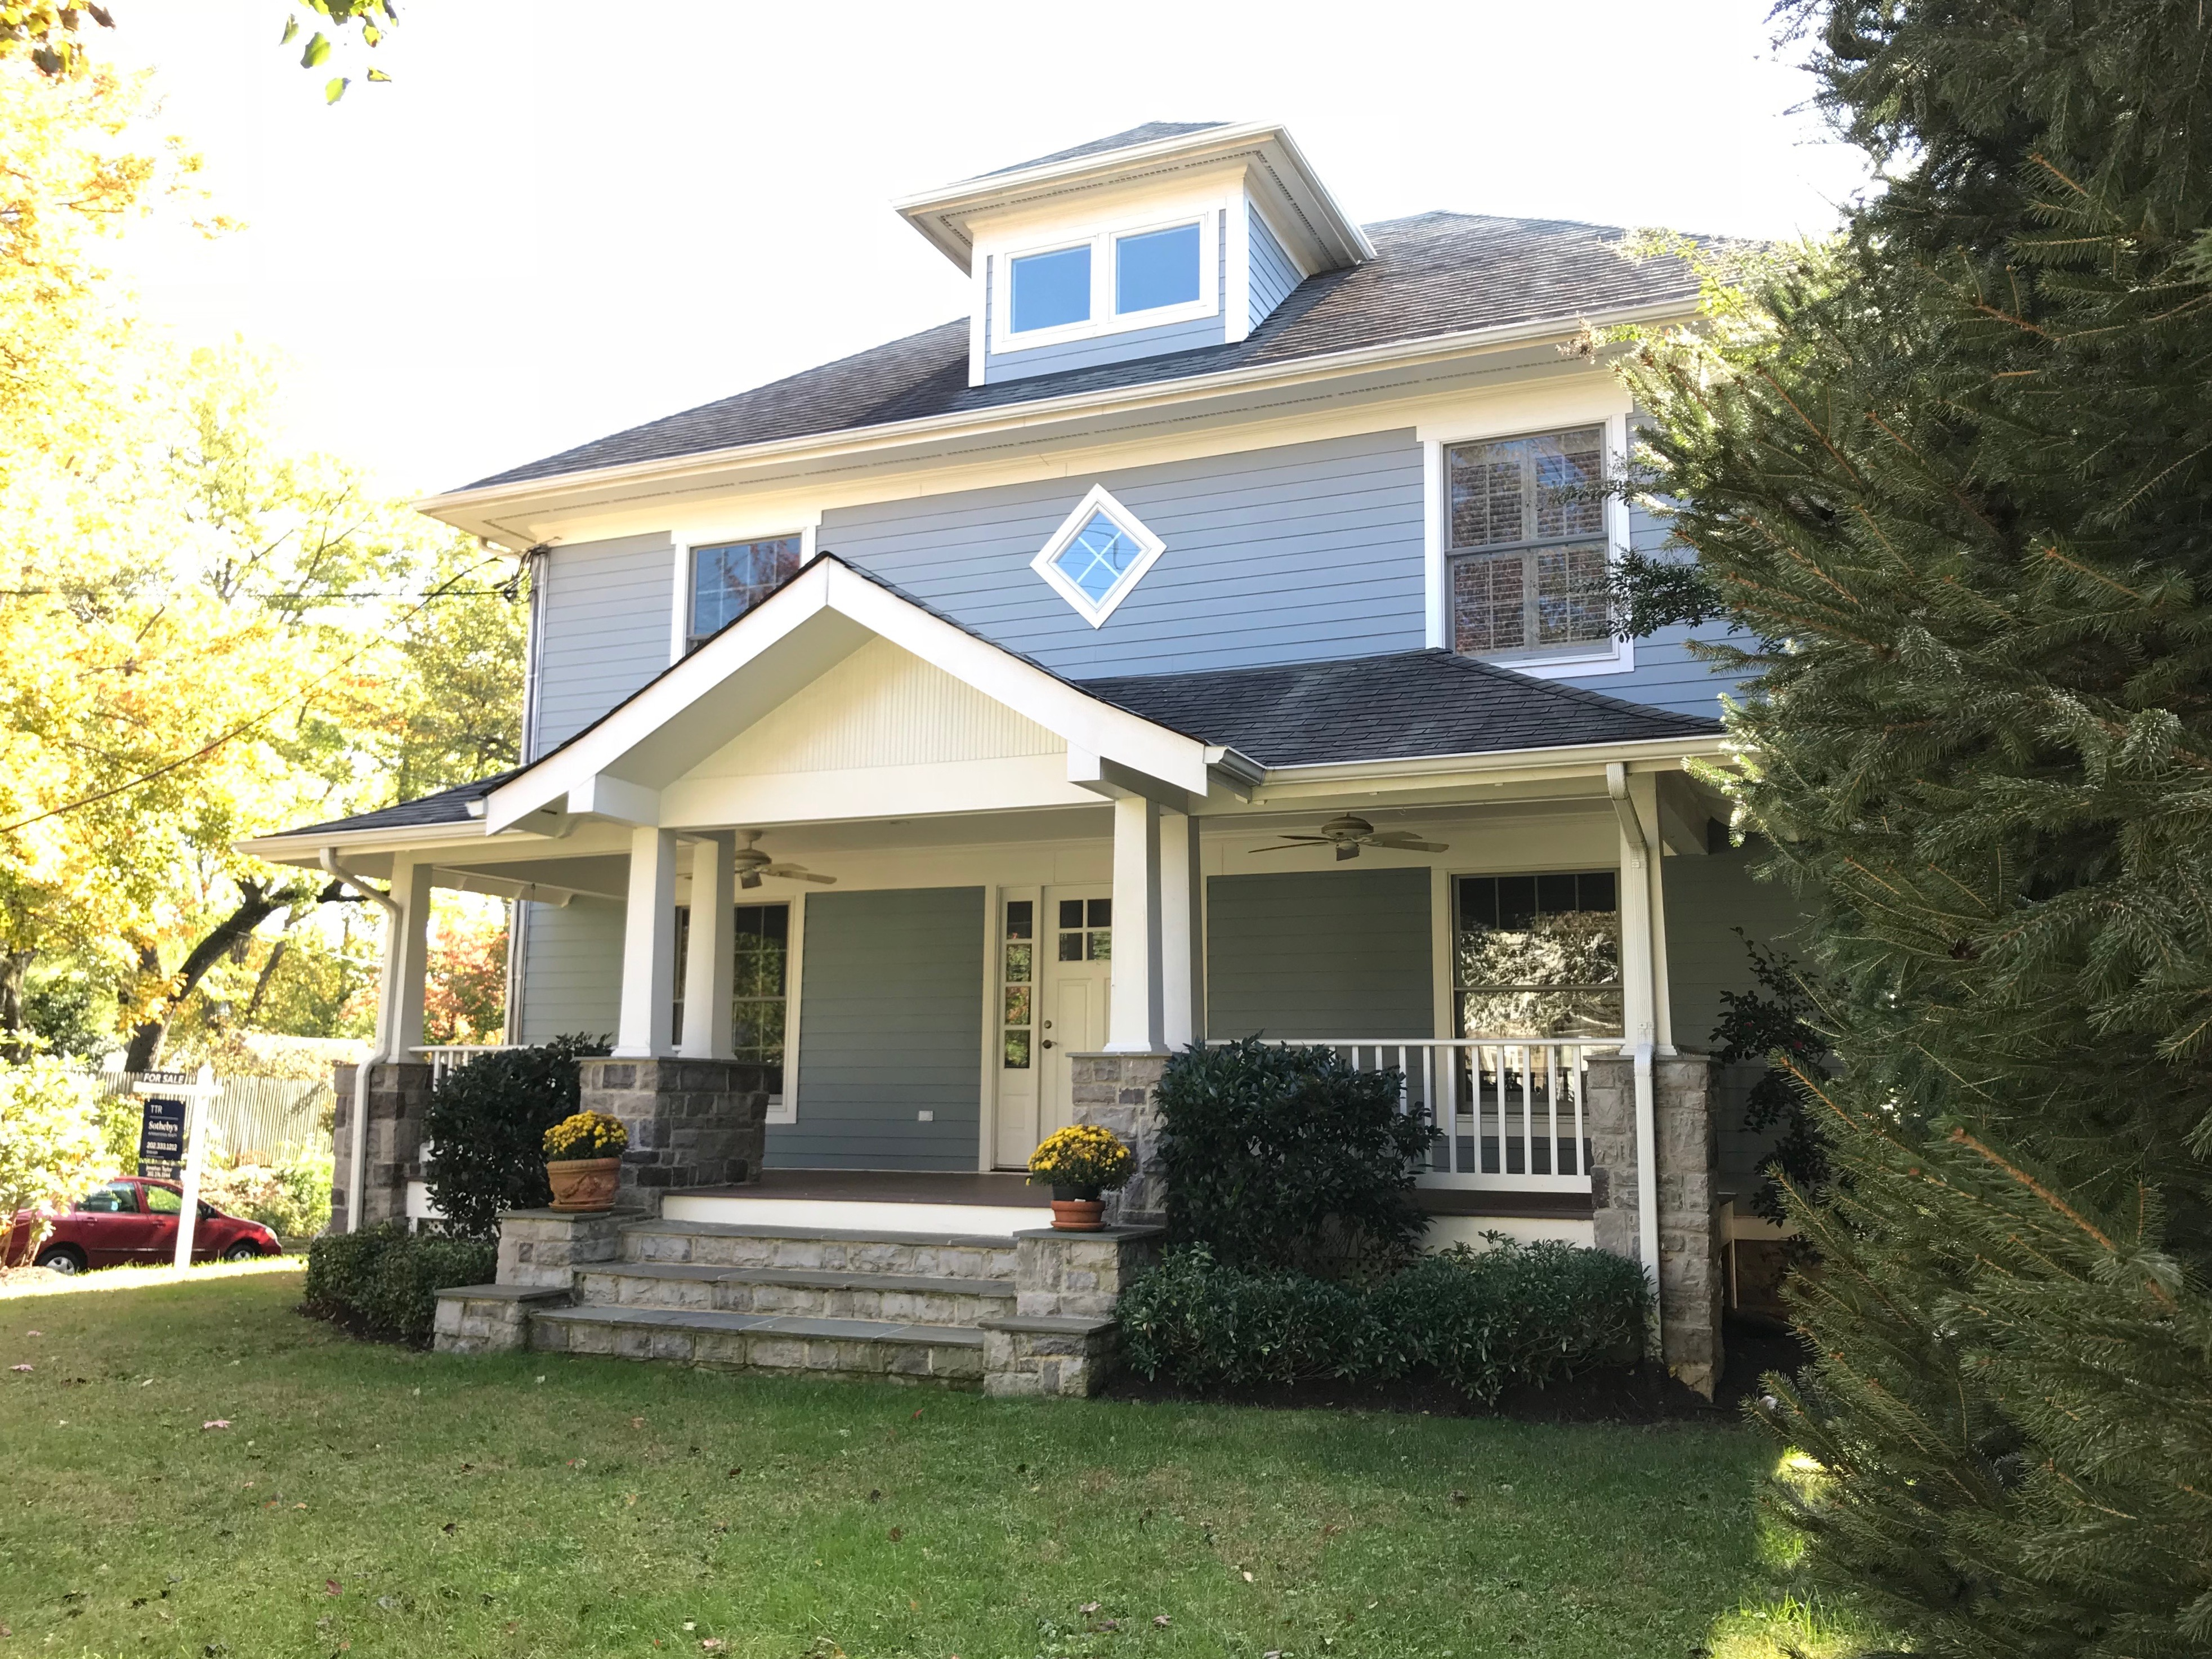 Kit Houses – DC Real Estate and House History